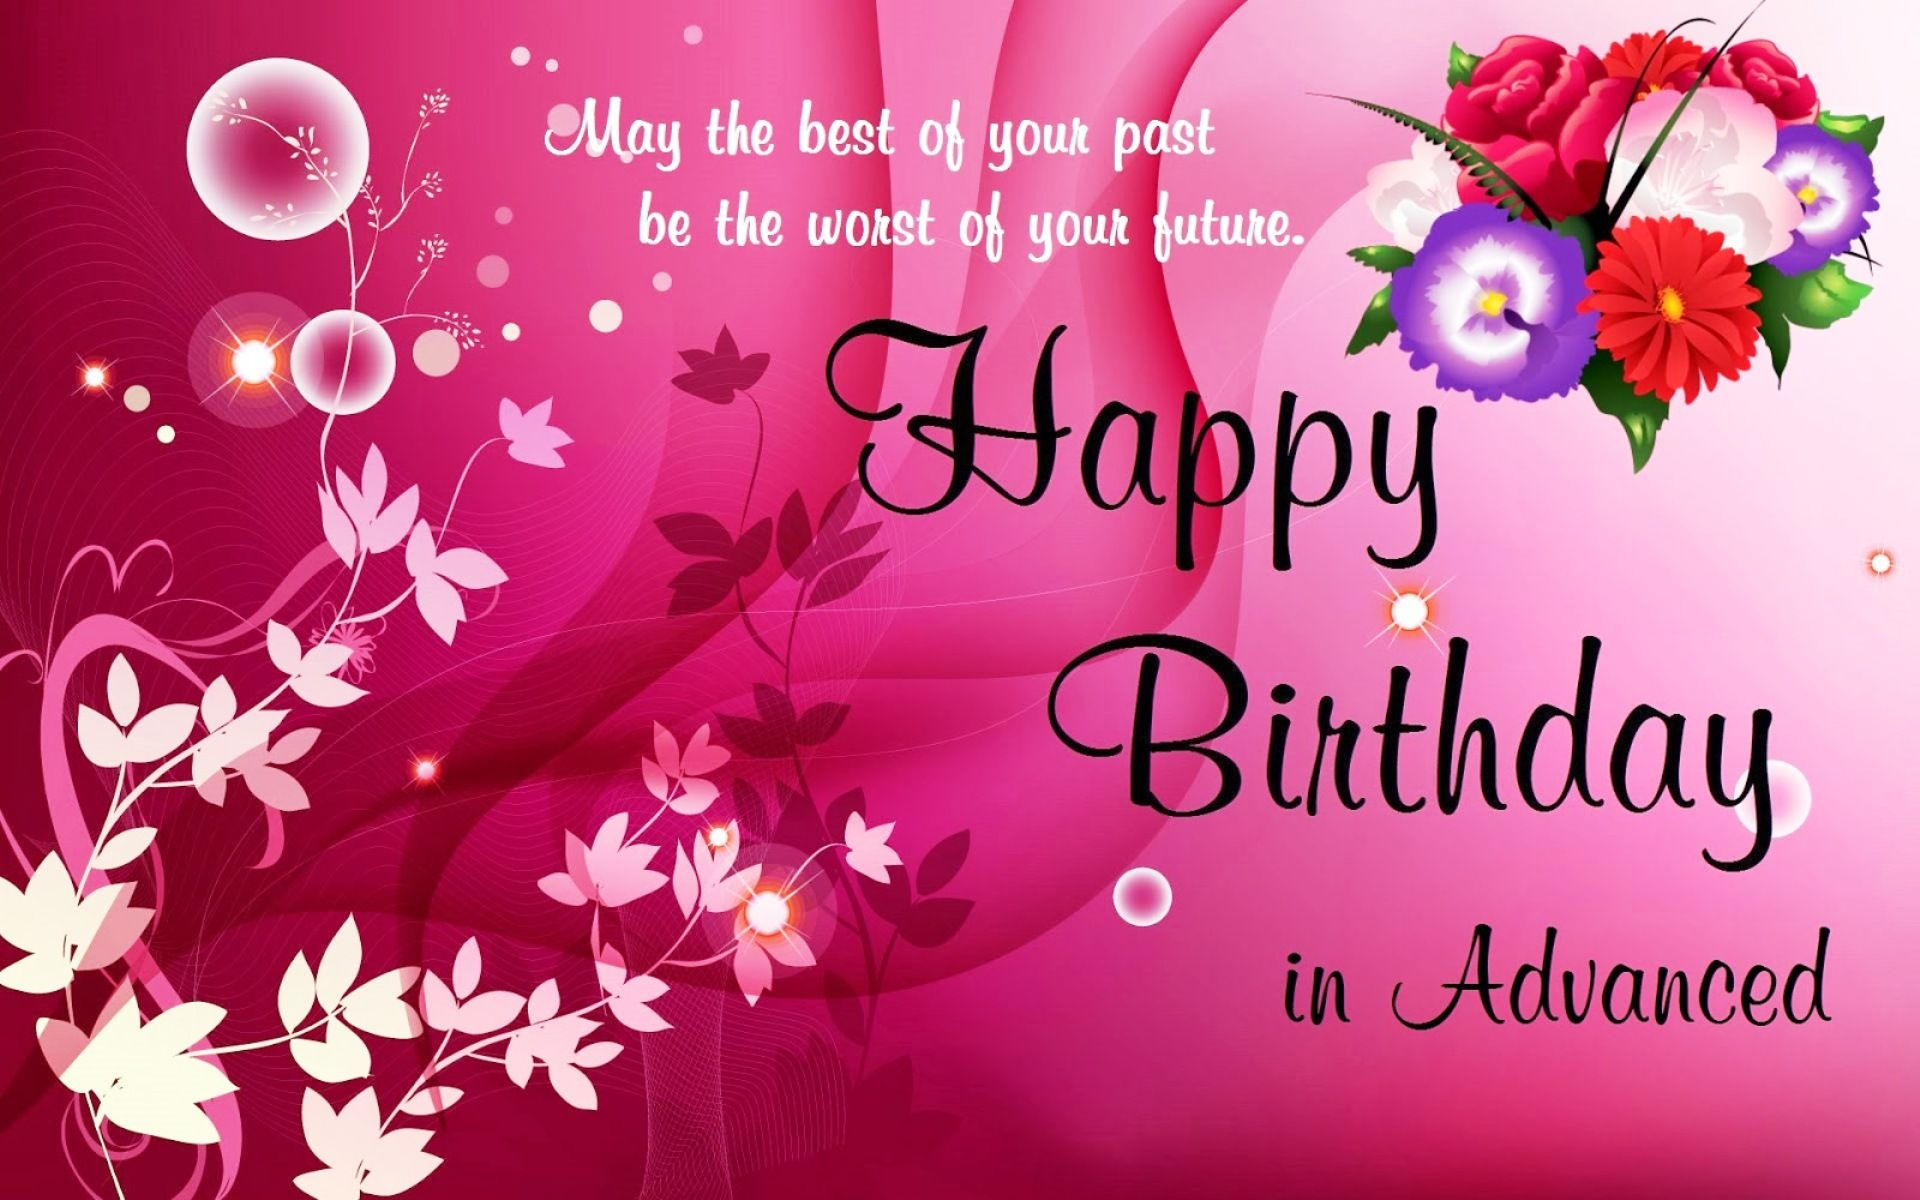 birthday wishes wallpaper download ; 8daa92988cb41d9c3c3e22a5ce120ff5